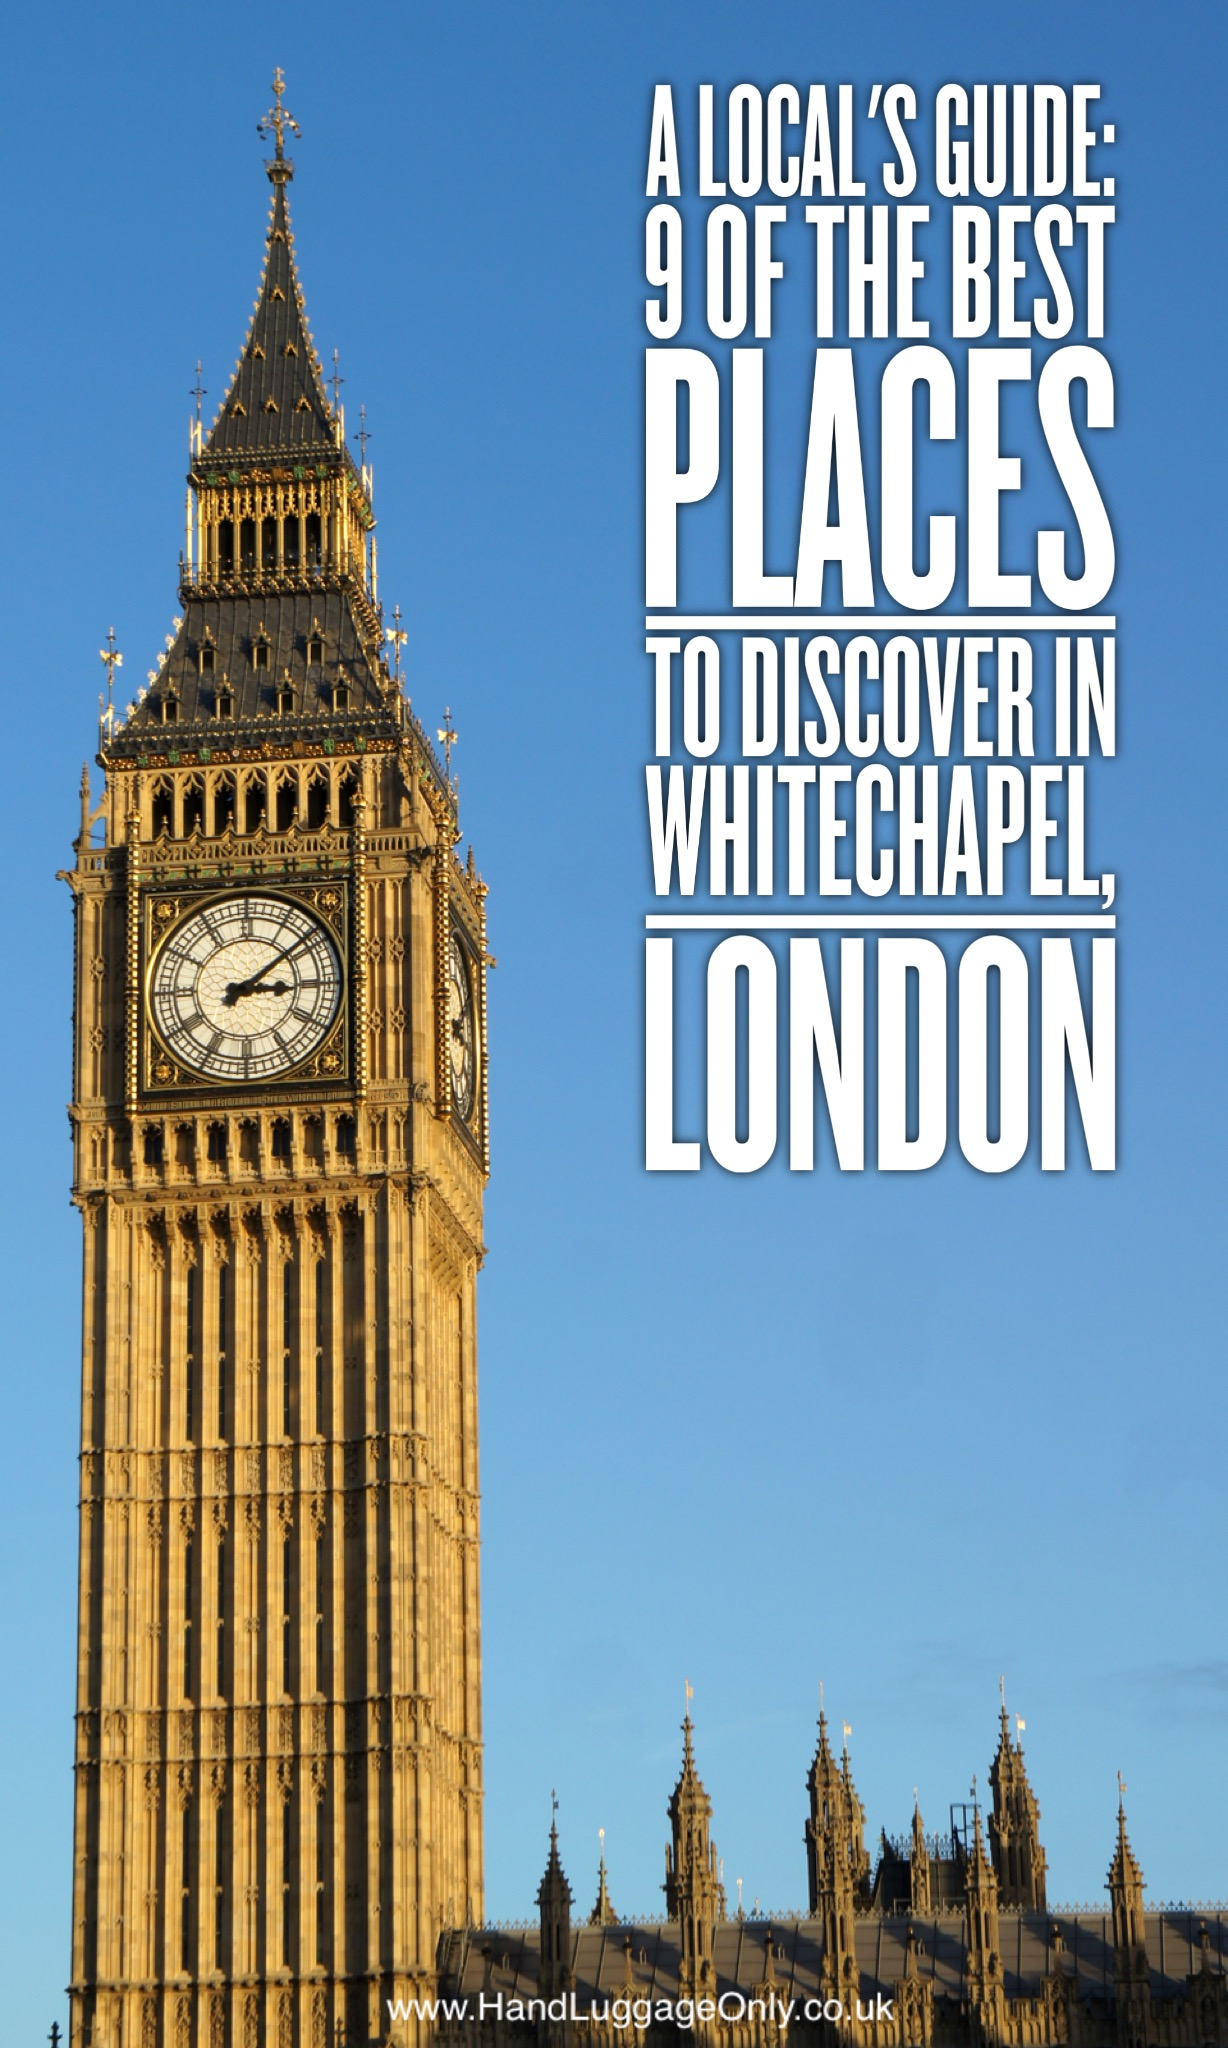 A Local's Guide: 9 Of The Best Places To Discover in Whitechapel, London (1)